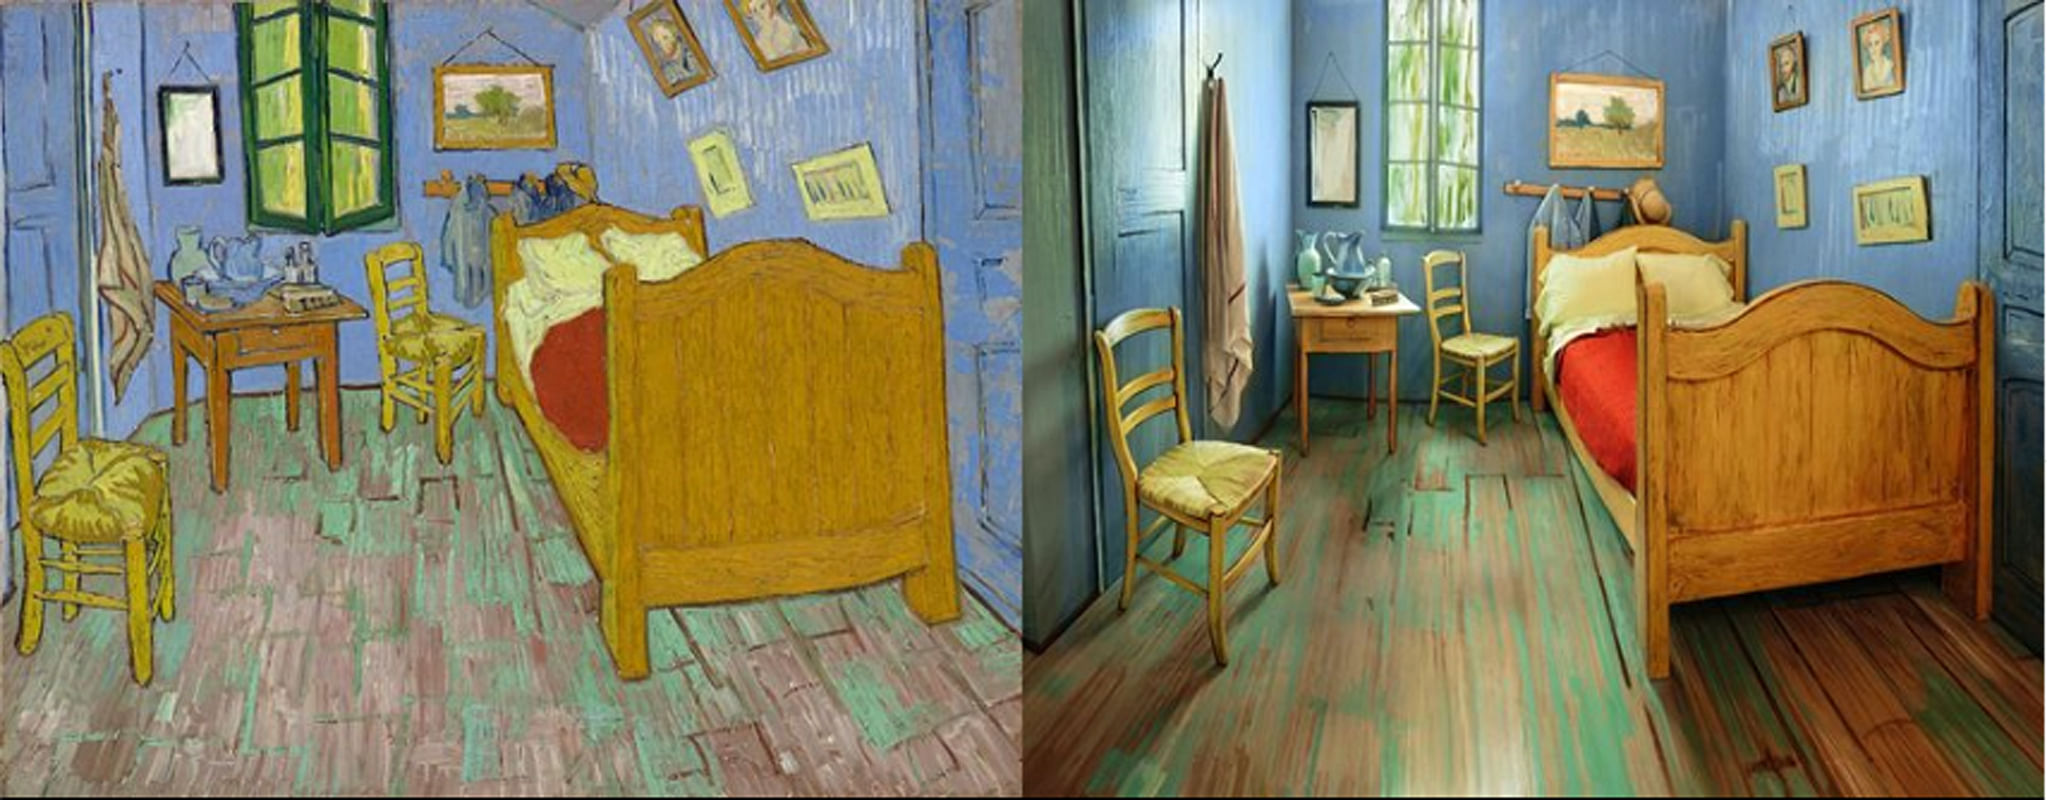 Rent on Airbnb a recreation of Vincent Van Gogh's famous ...